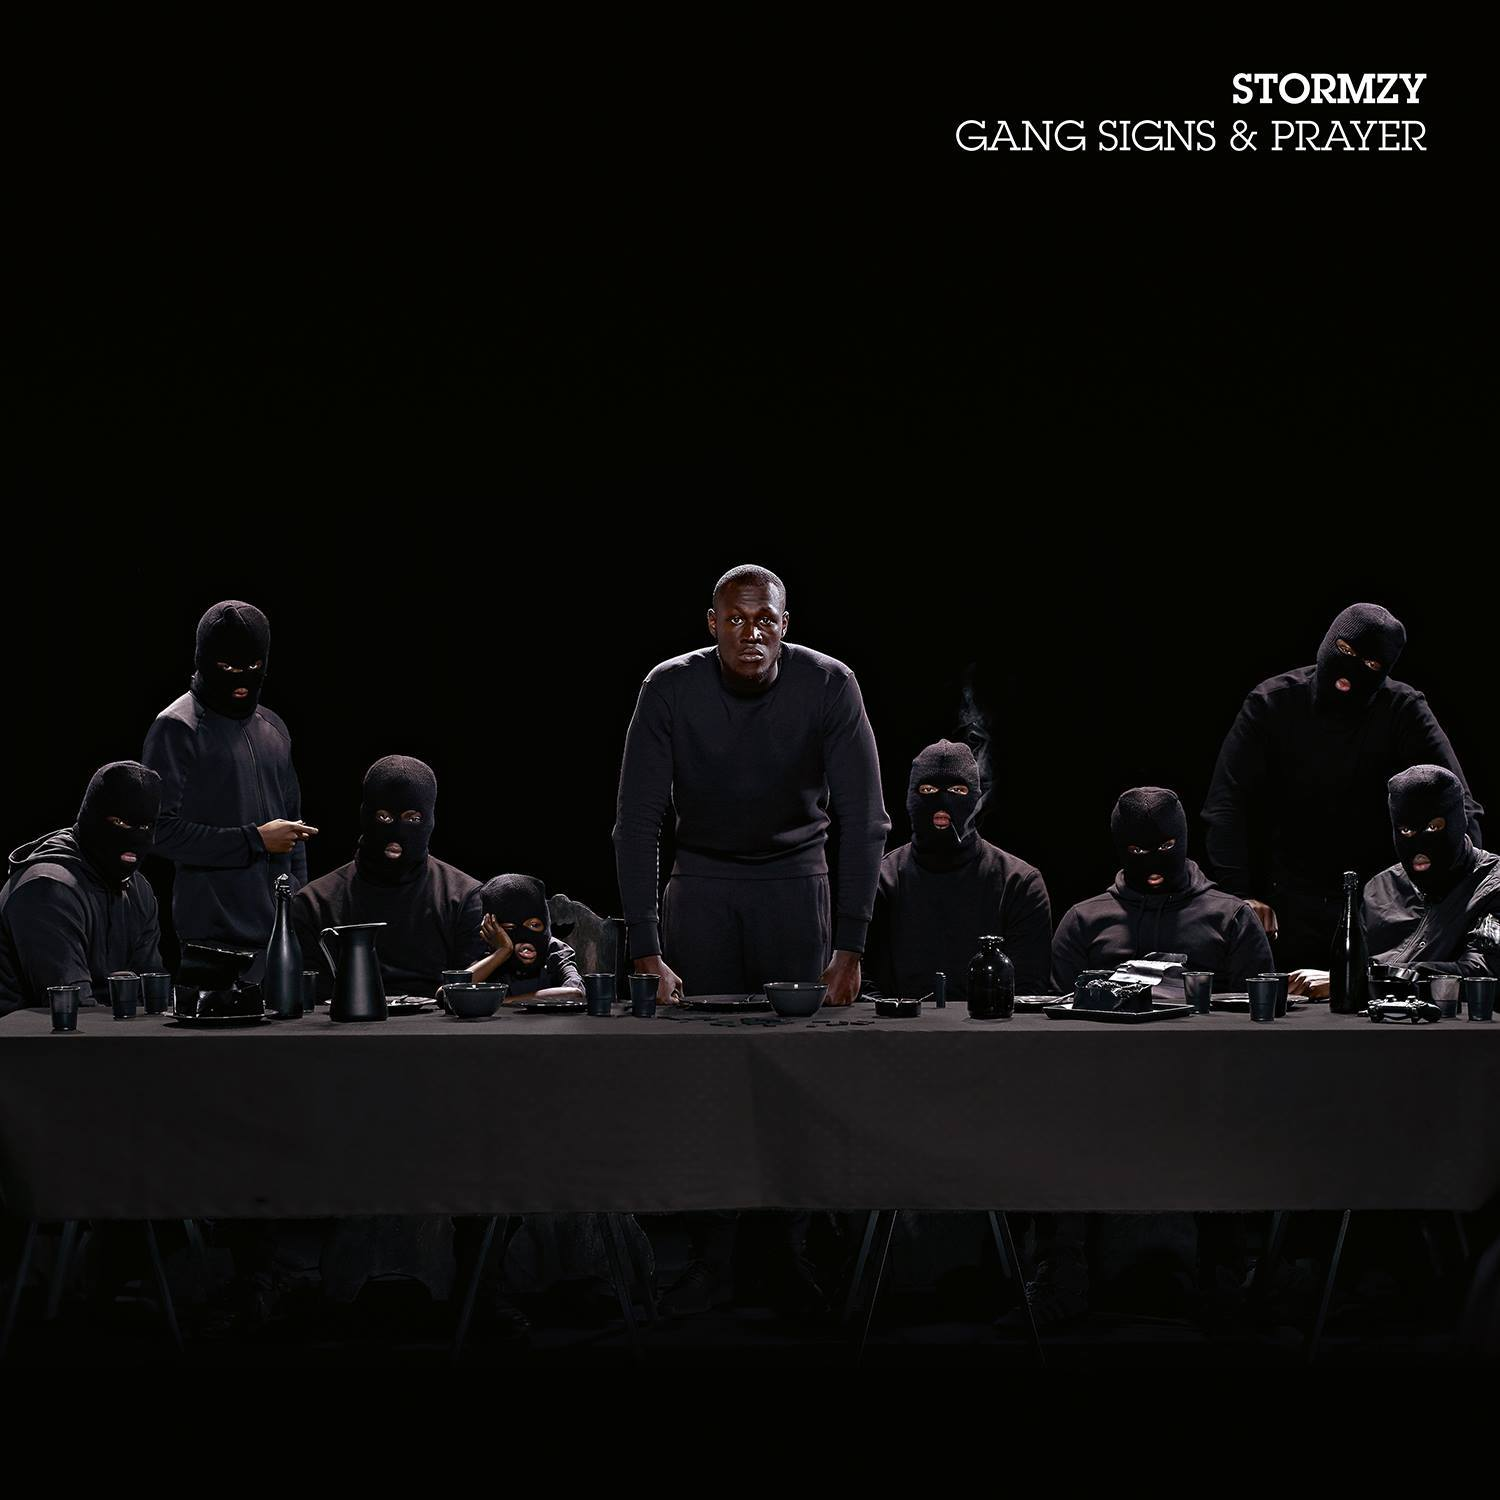 Stormzy JustMusic.fr